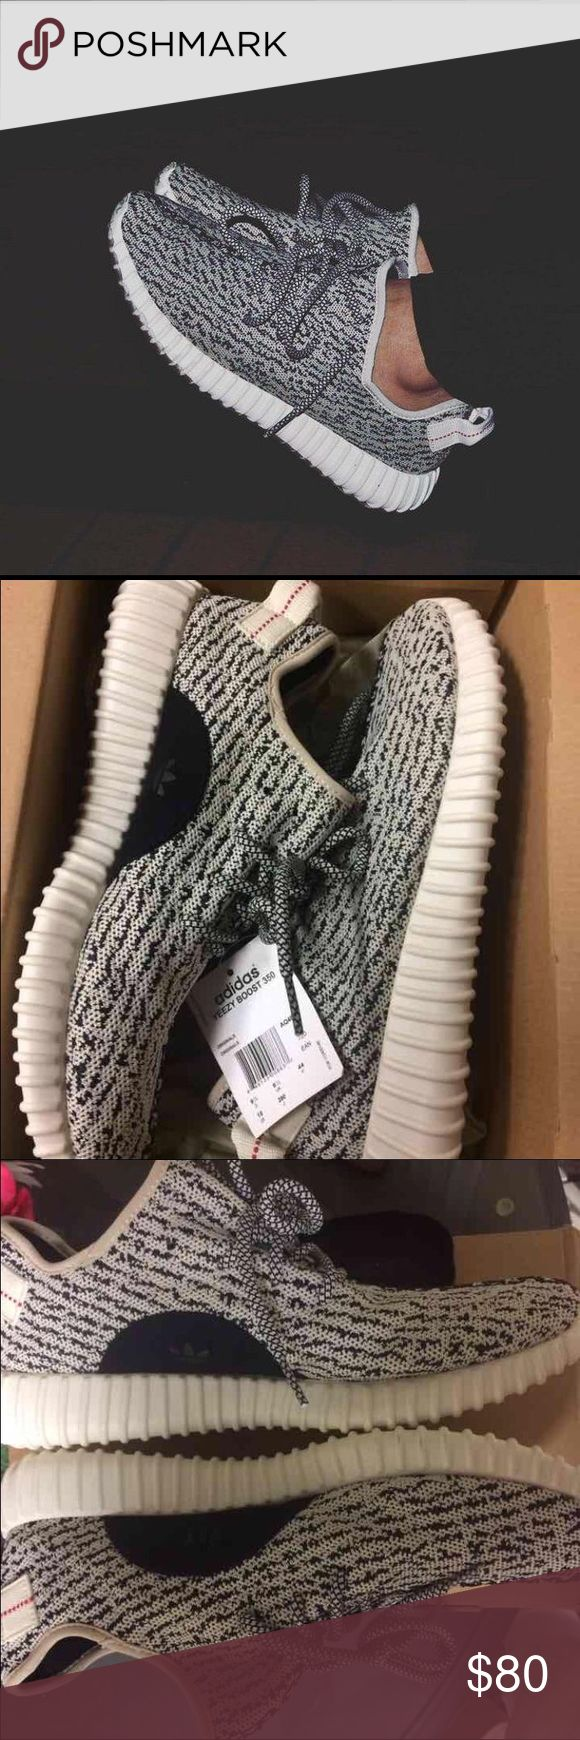 YEEZY Boost 350 Not sure of authenticity. *NO TRADES* Price Negotiable Yeezy Shoes Sneakers